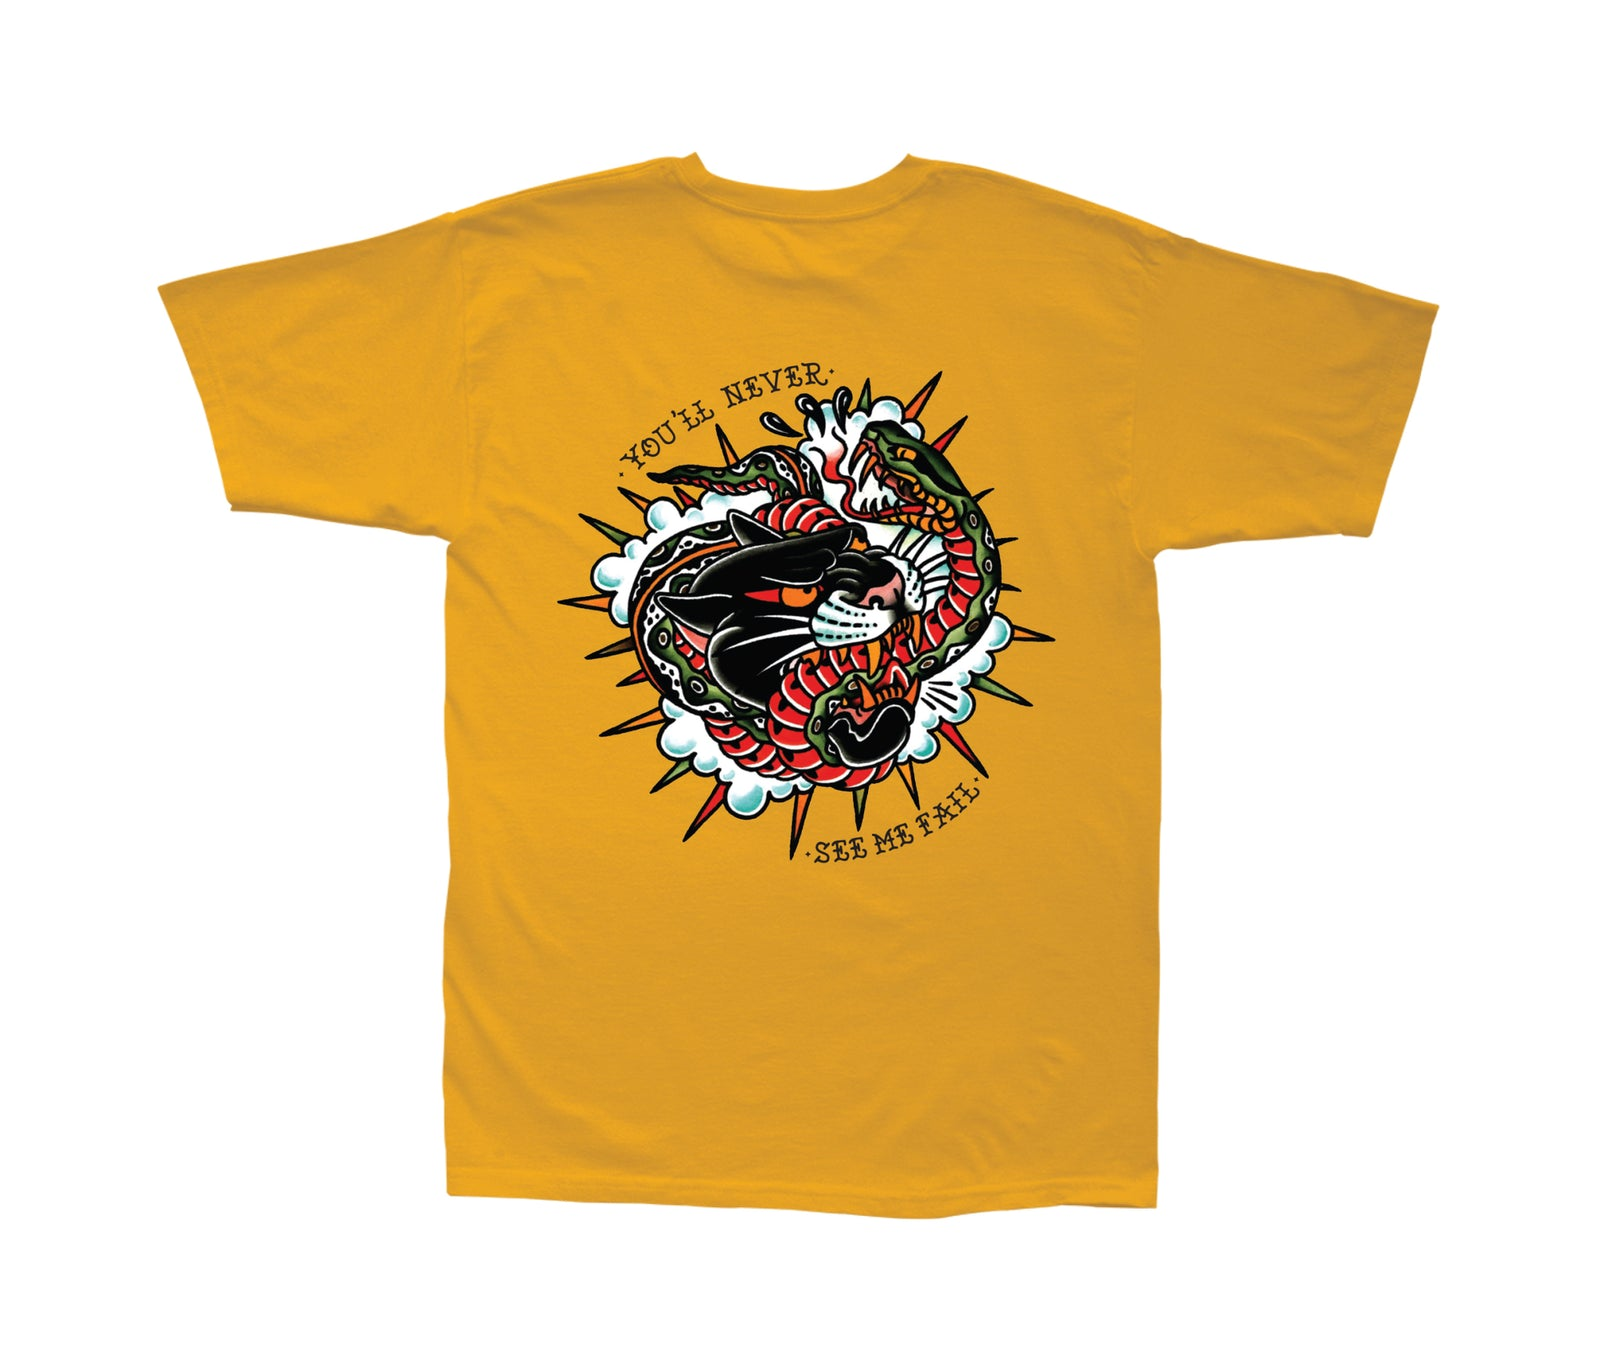 Loser Machine Never Fail T-Shirt Gold